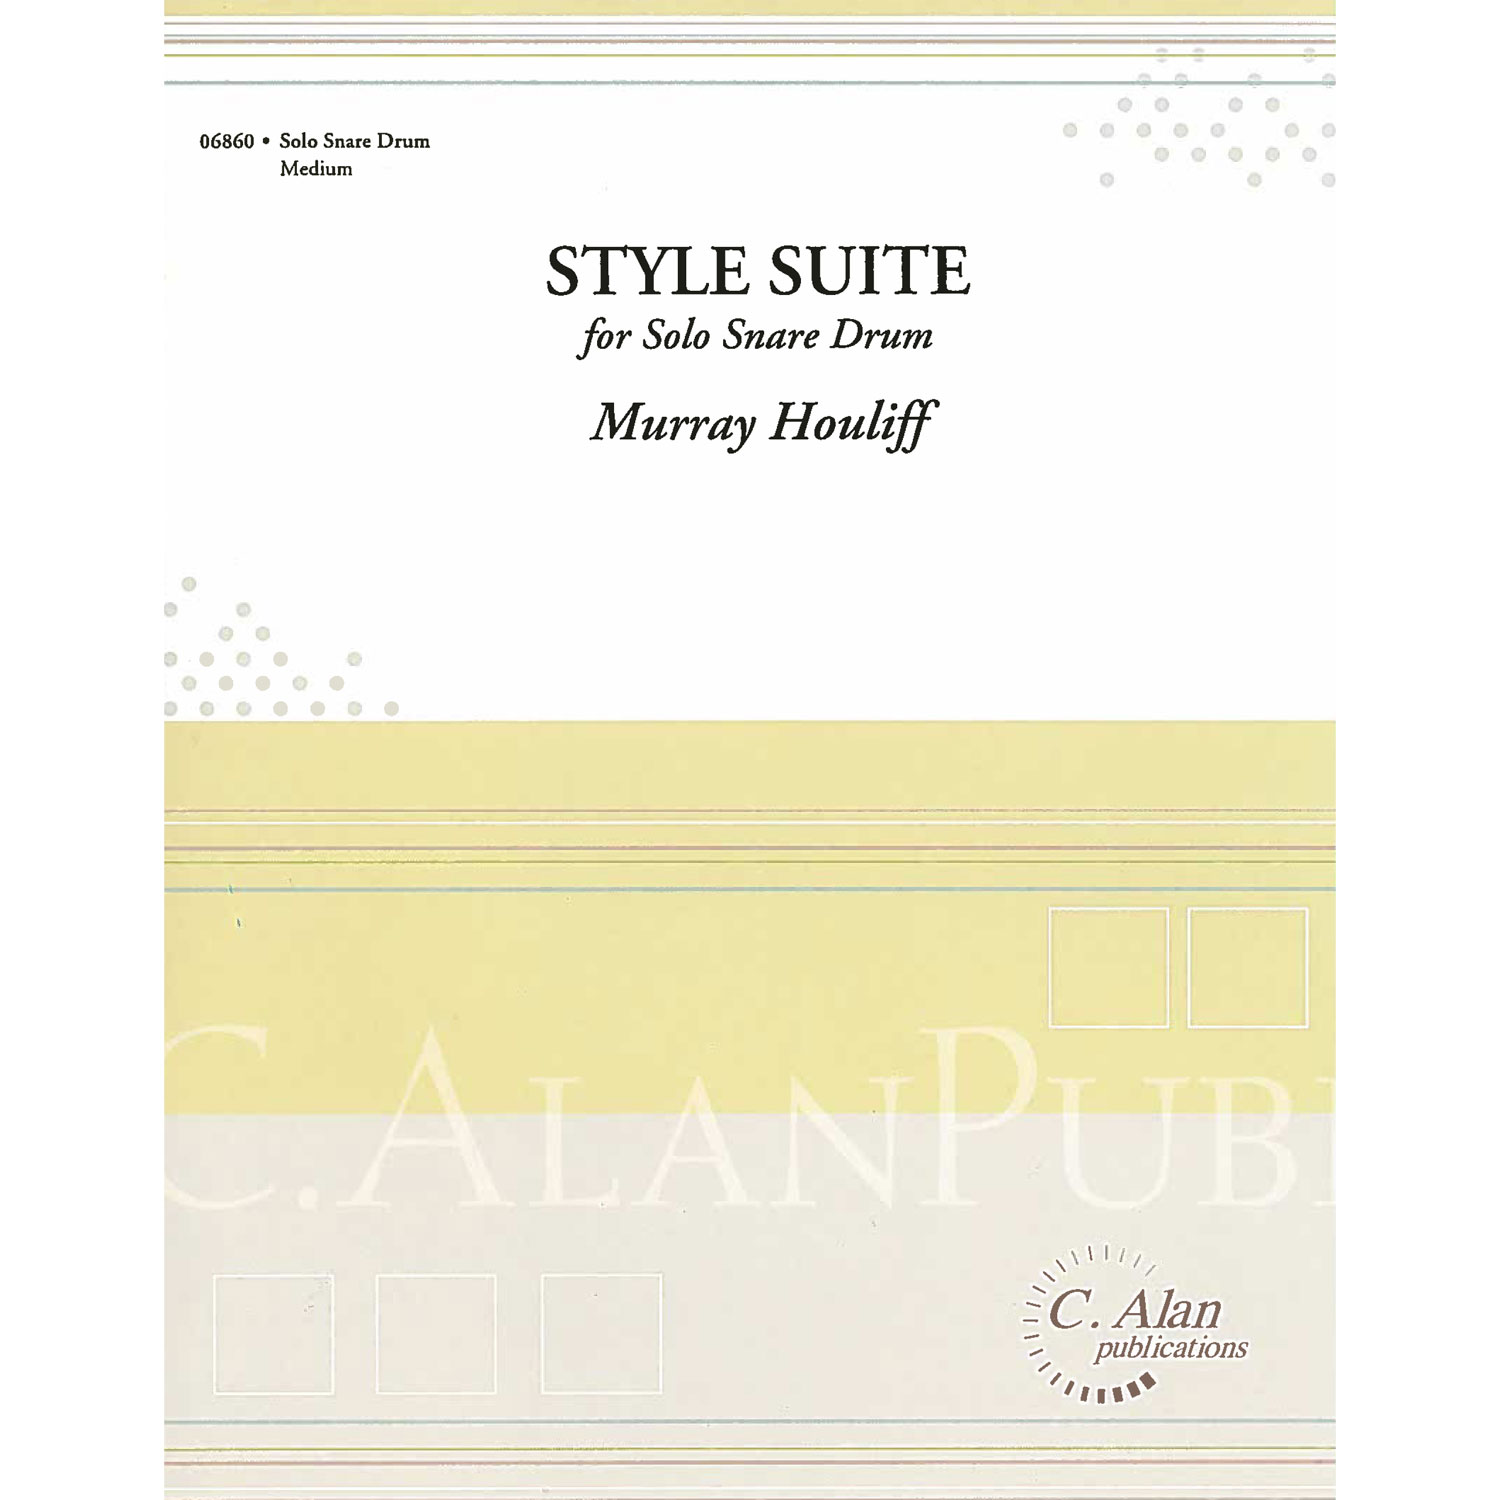 Style Suite for Solo Snare Drum by Murray Houllif